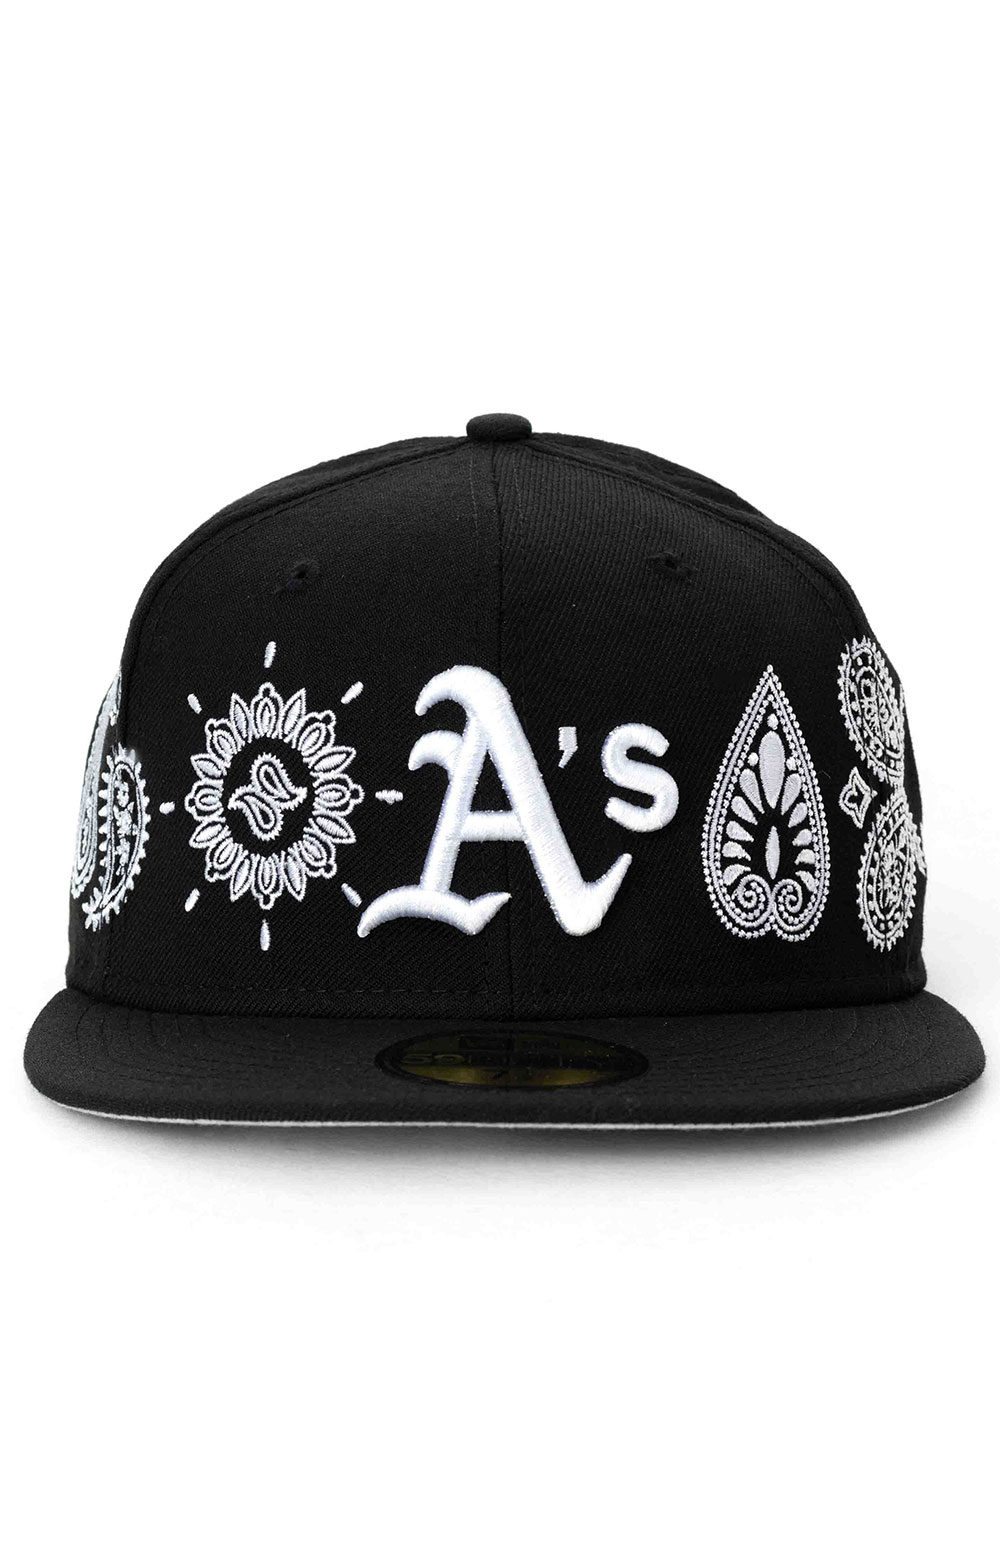 Oakland Athletics Paisley Elements 59Fifty Fitted Hat - Black  2